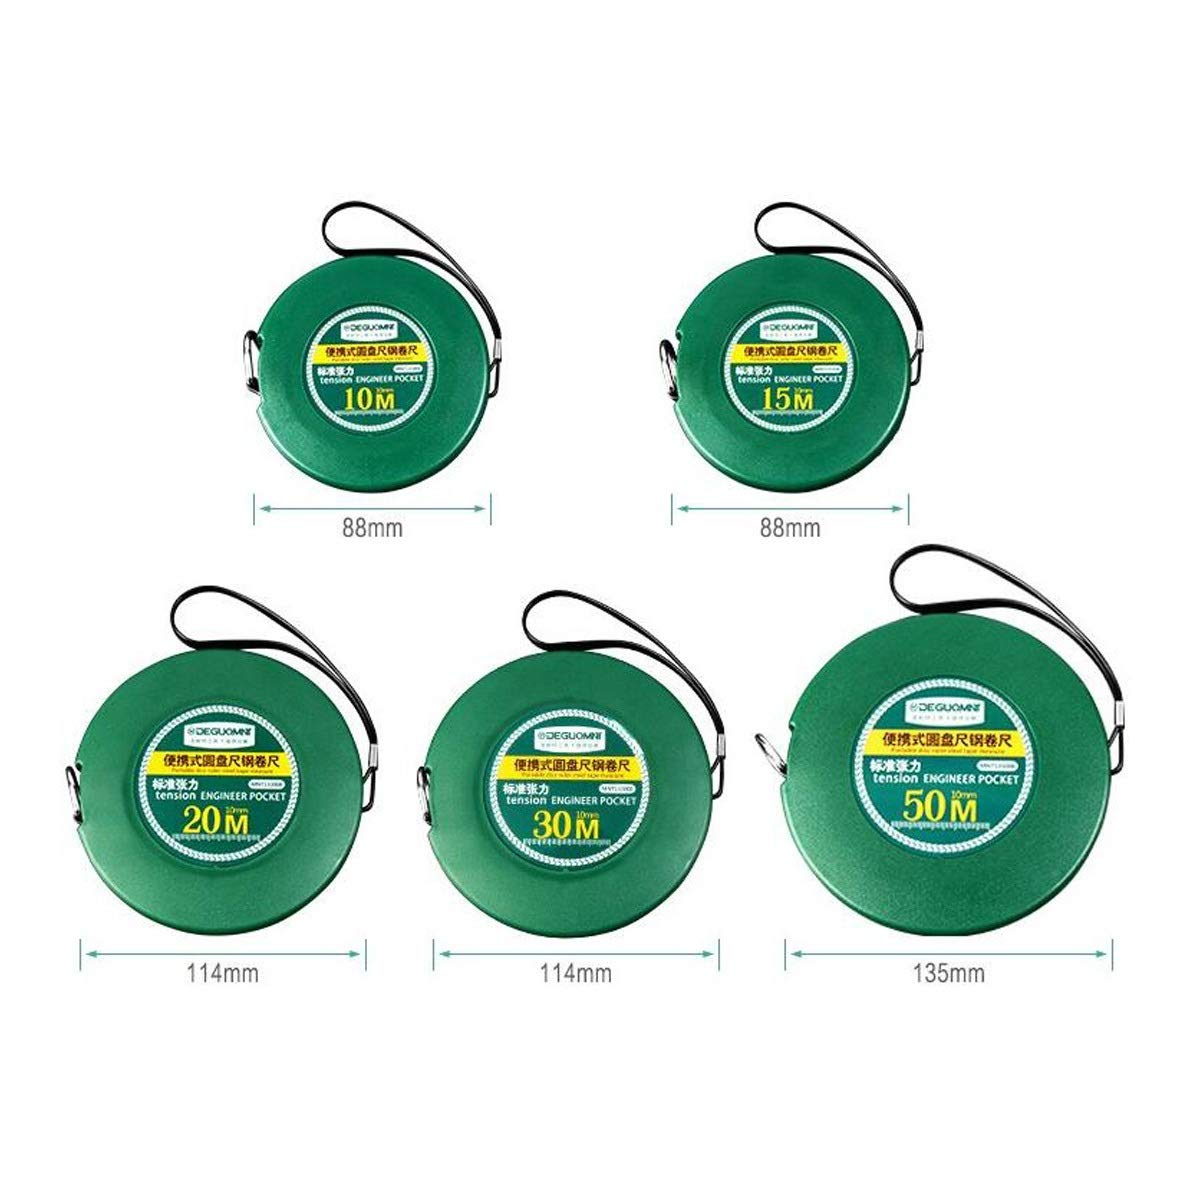 Measuring Tape-Body Measuring Tape Tape Measure 60 Inch Heavy Duty Professional Soft Tape Measure Tools